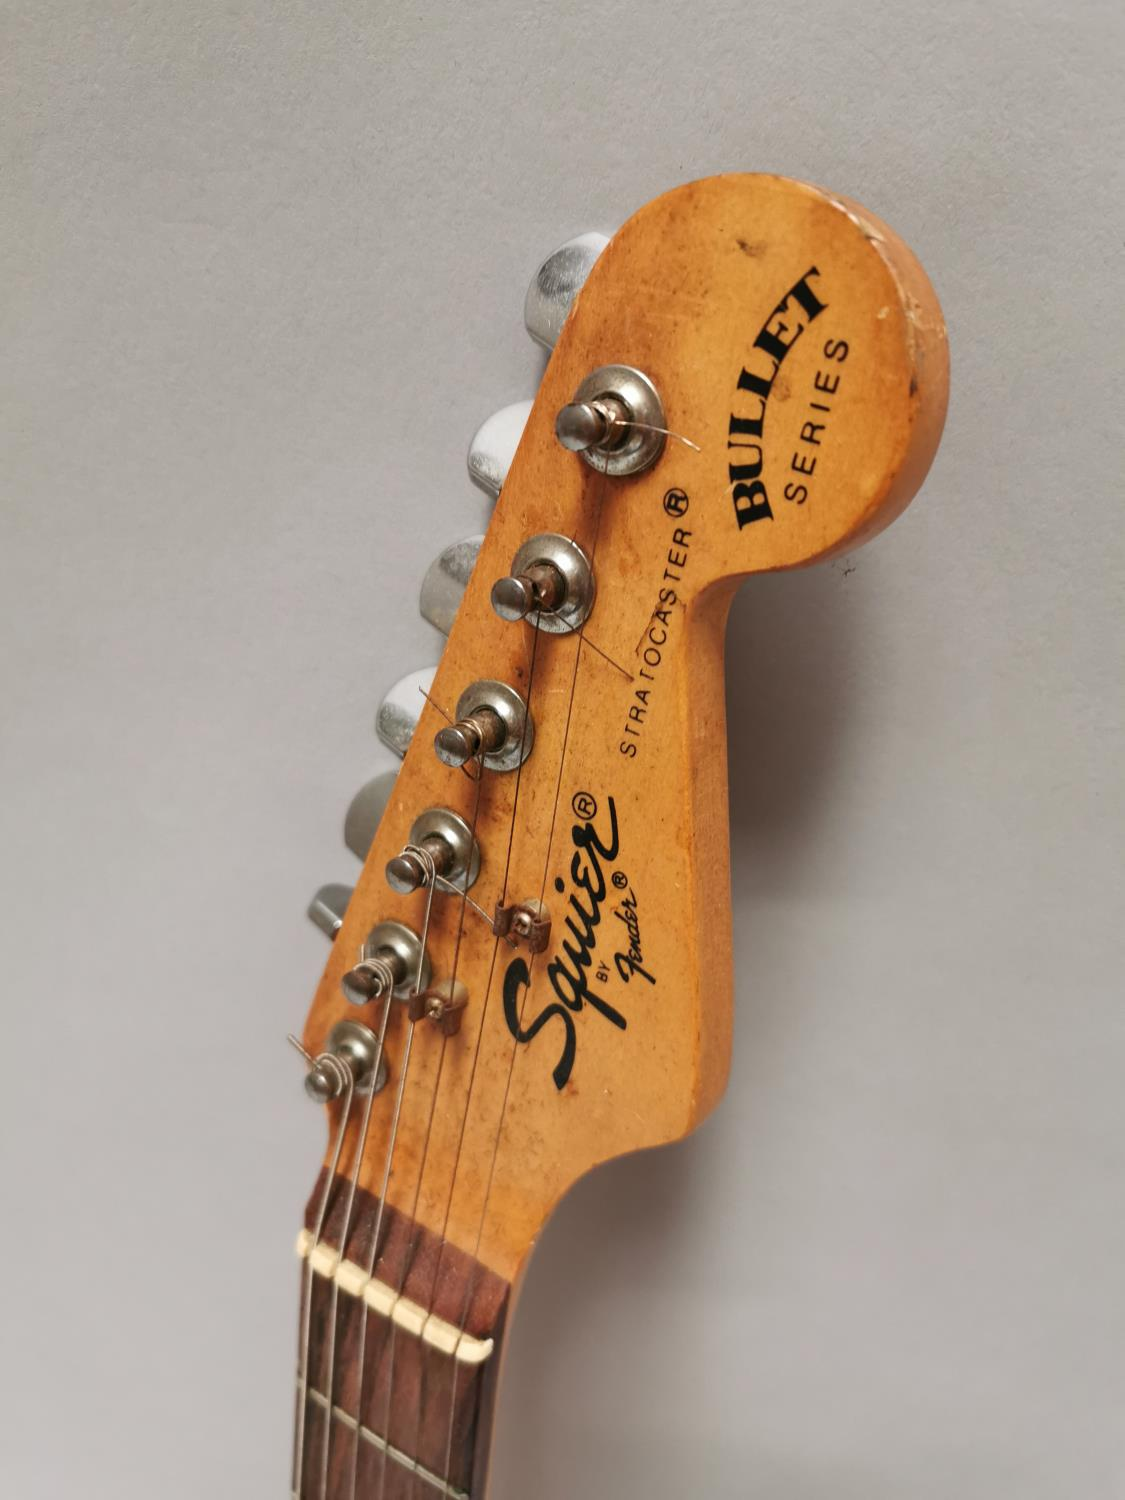 Squire Fender electric guitar - Image 2 of 5